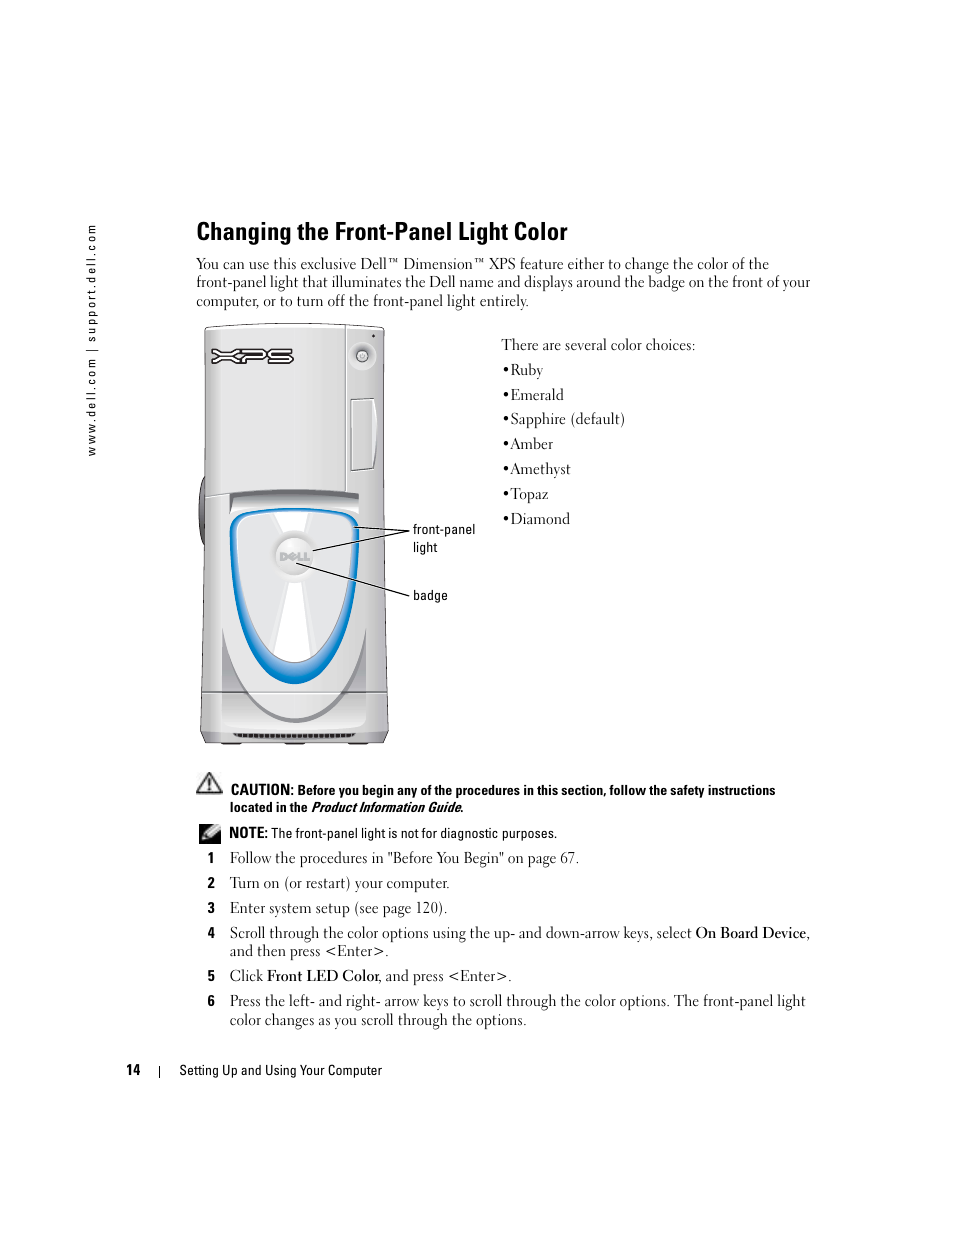 Changing the front-panel light color   Dell XPS/Dimension XPS Gen 4 User  Manual   Page 14 / 154